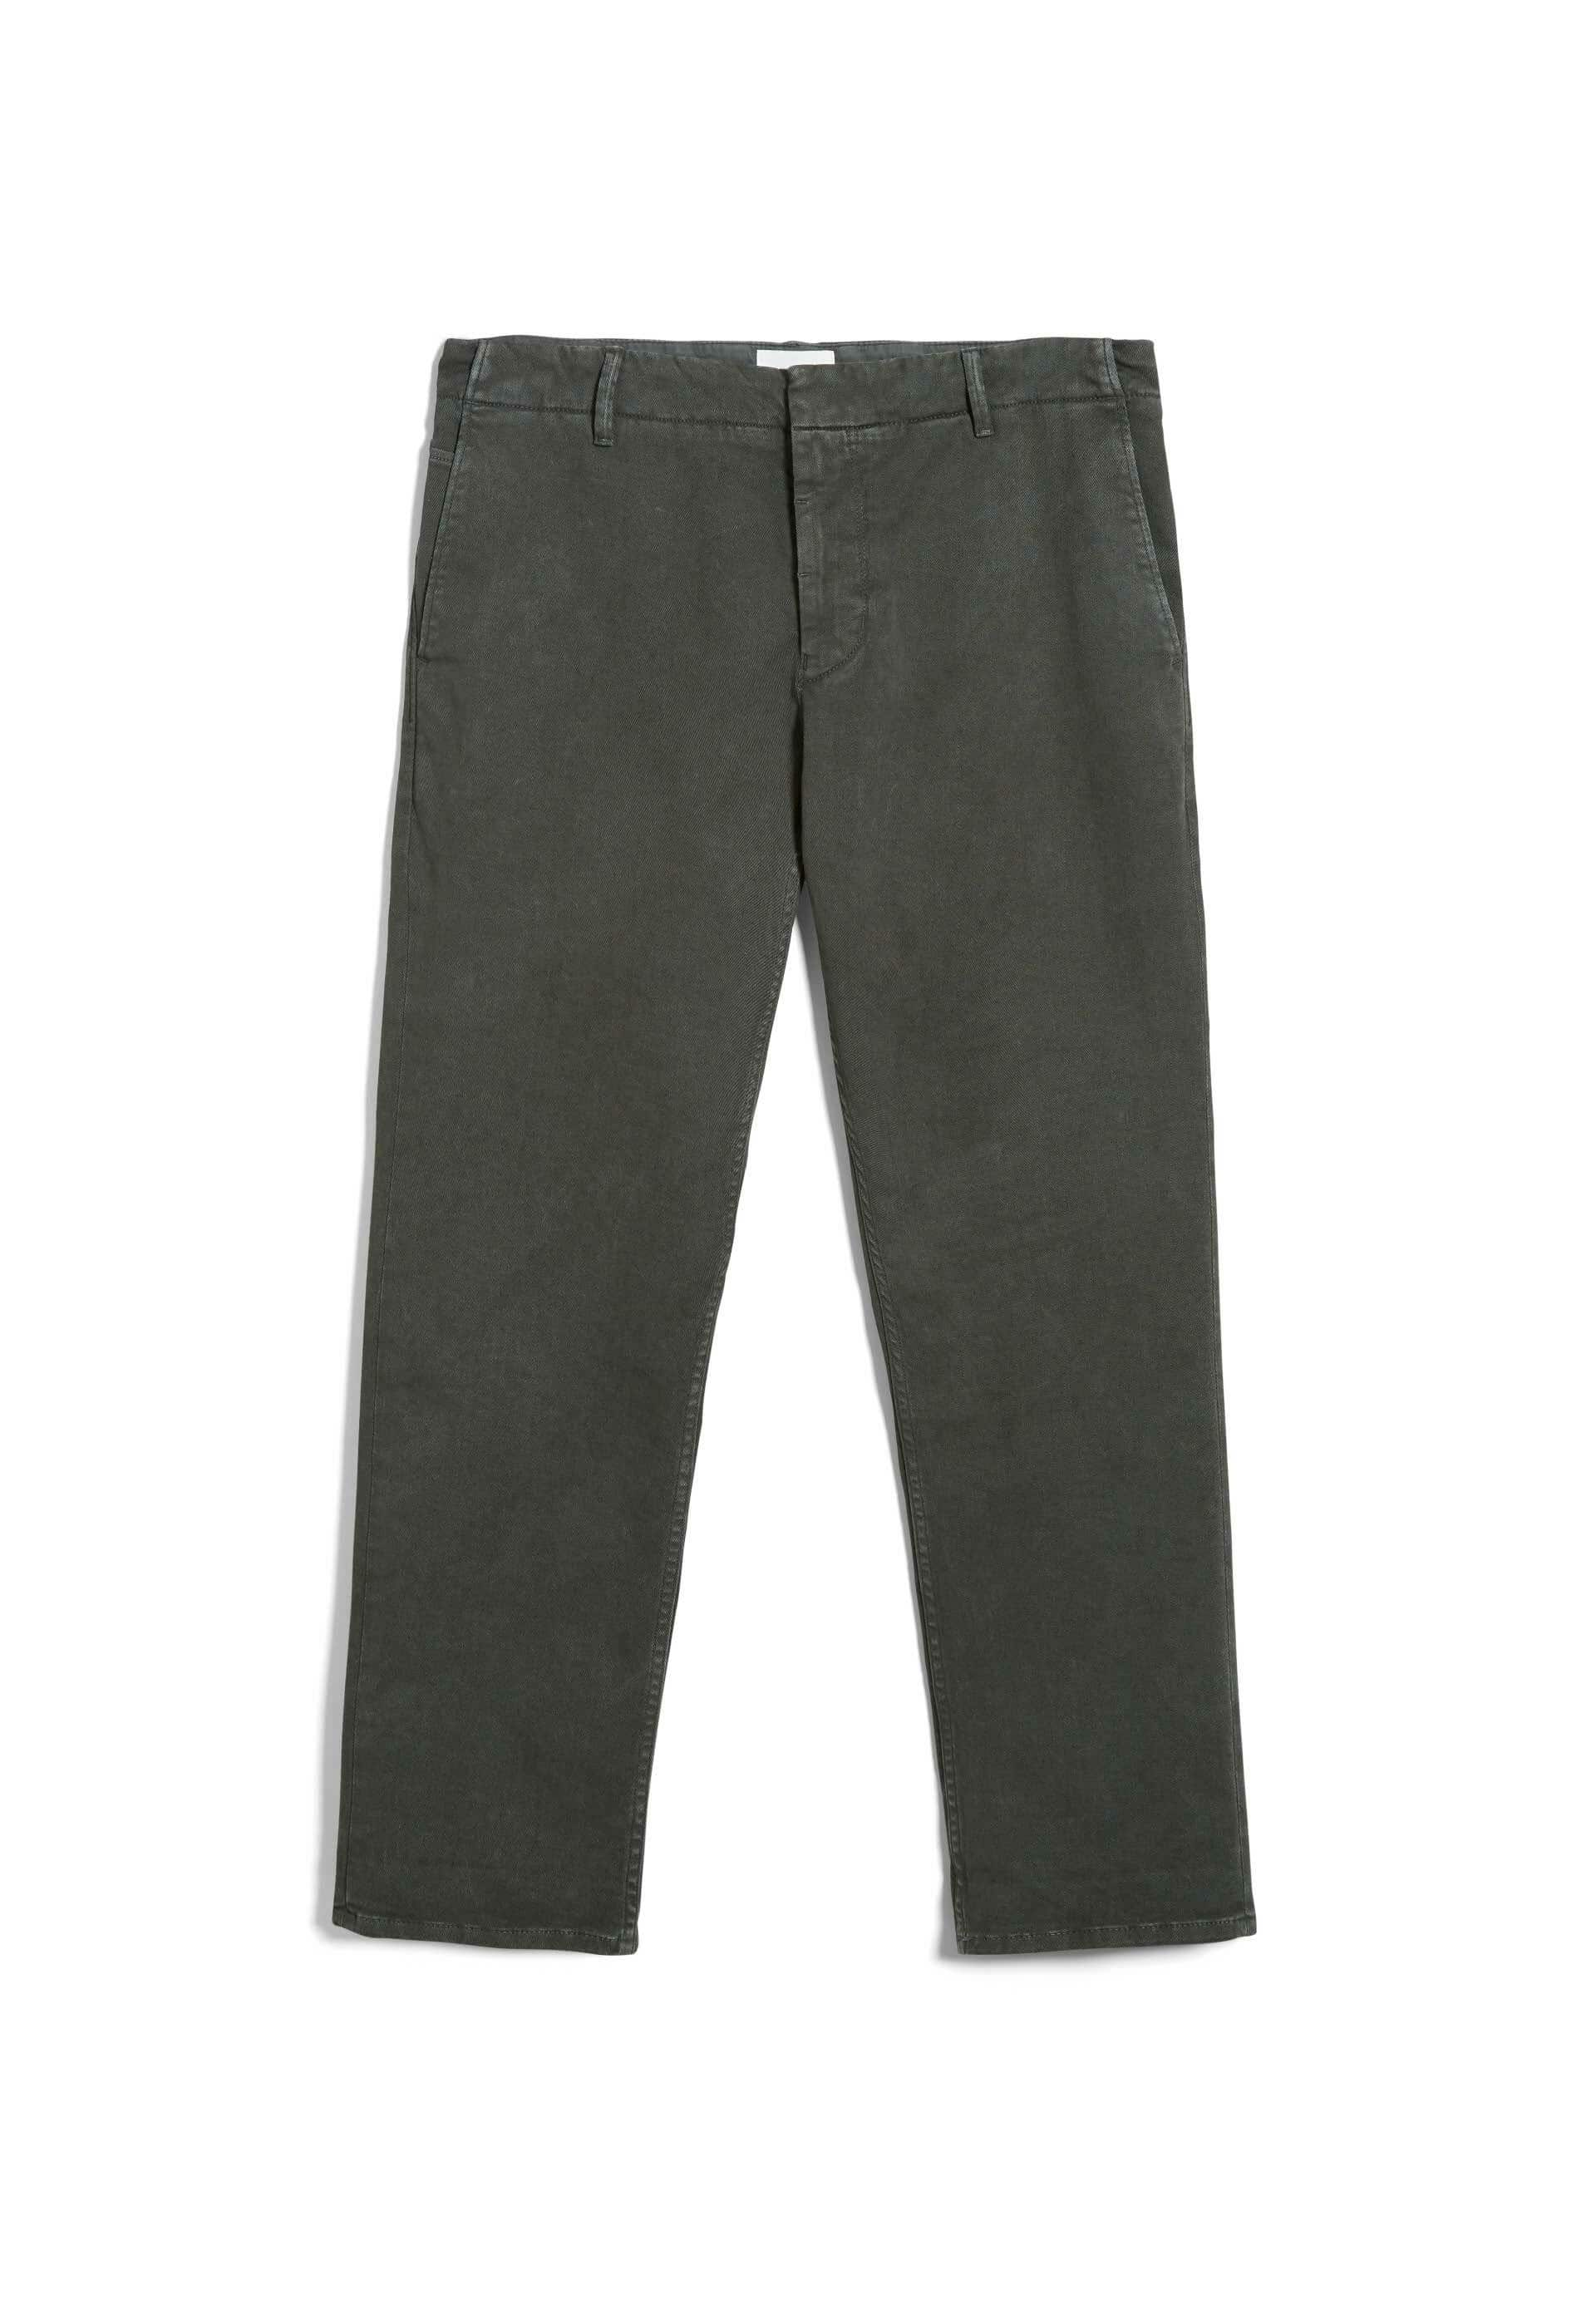 ELVAAR EARTHCOLORS® Chino made of Organic Cotton Mix